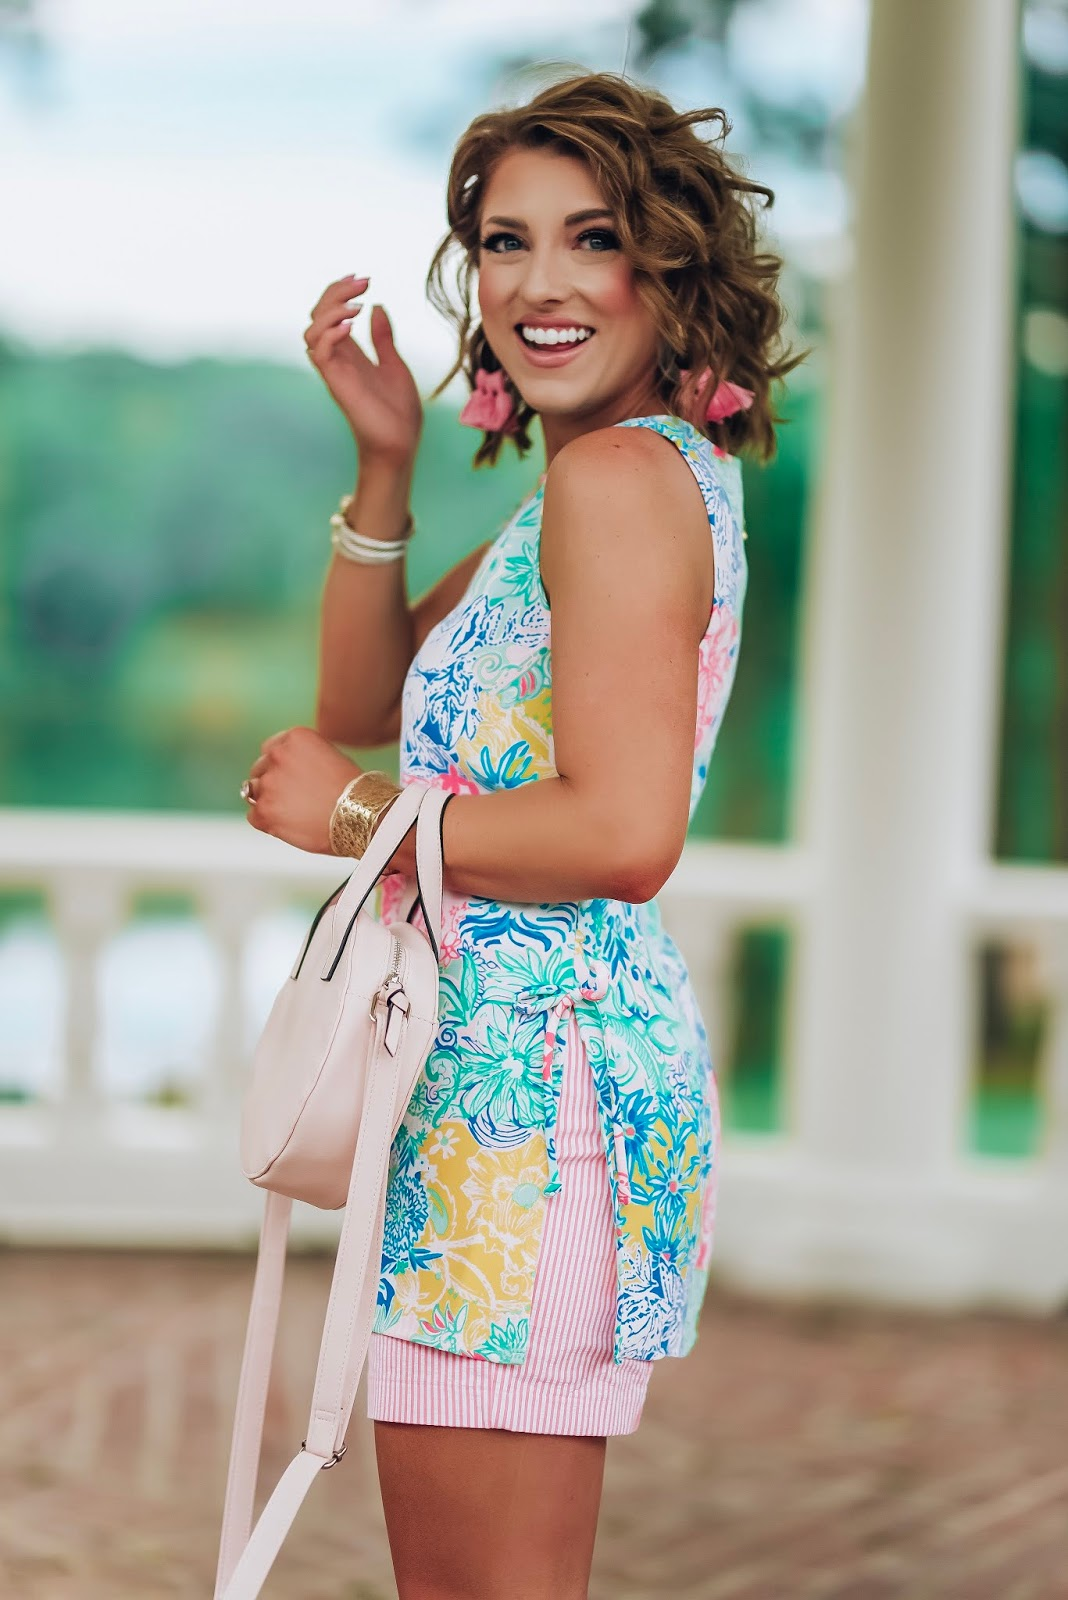 Lilly Pulitzer Donna Tunic in Cheek to Cheek + Seersucker Kelly Shorts With Palm Village Augusta + Giveaway!! - Something Delightful Blog #lillypulitzer #springstyle